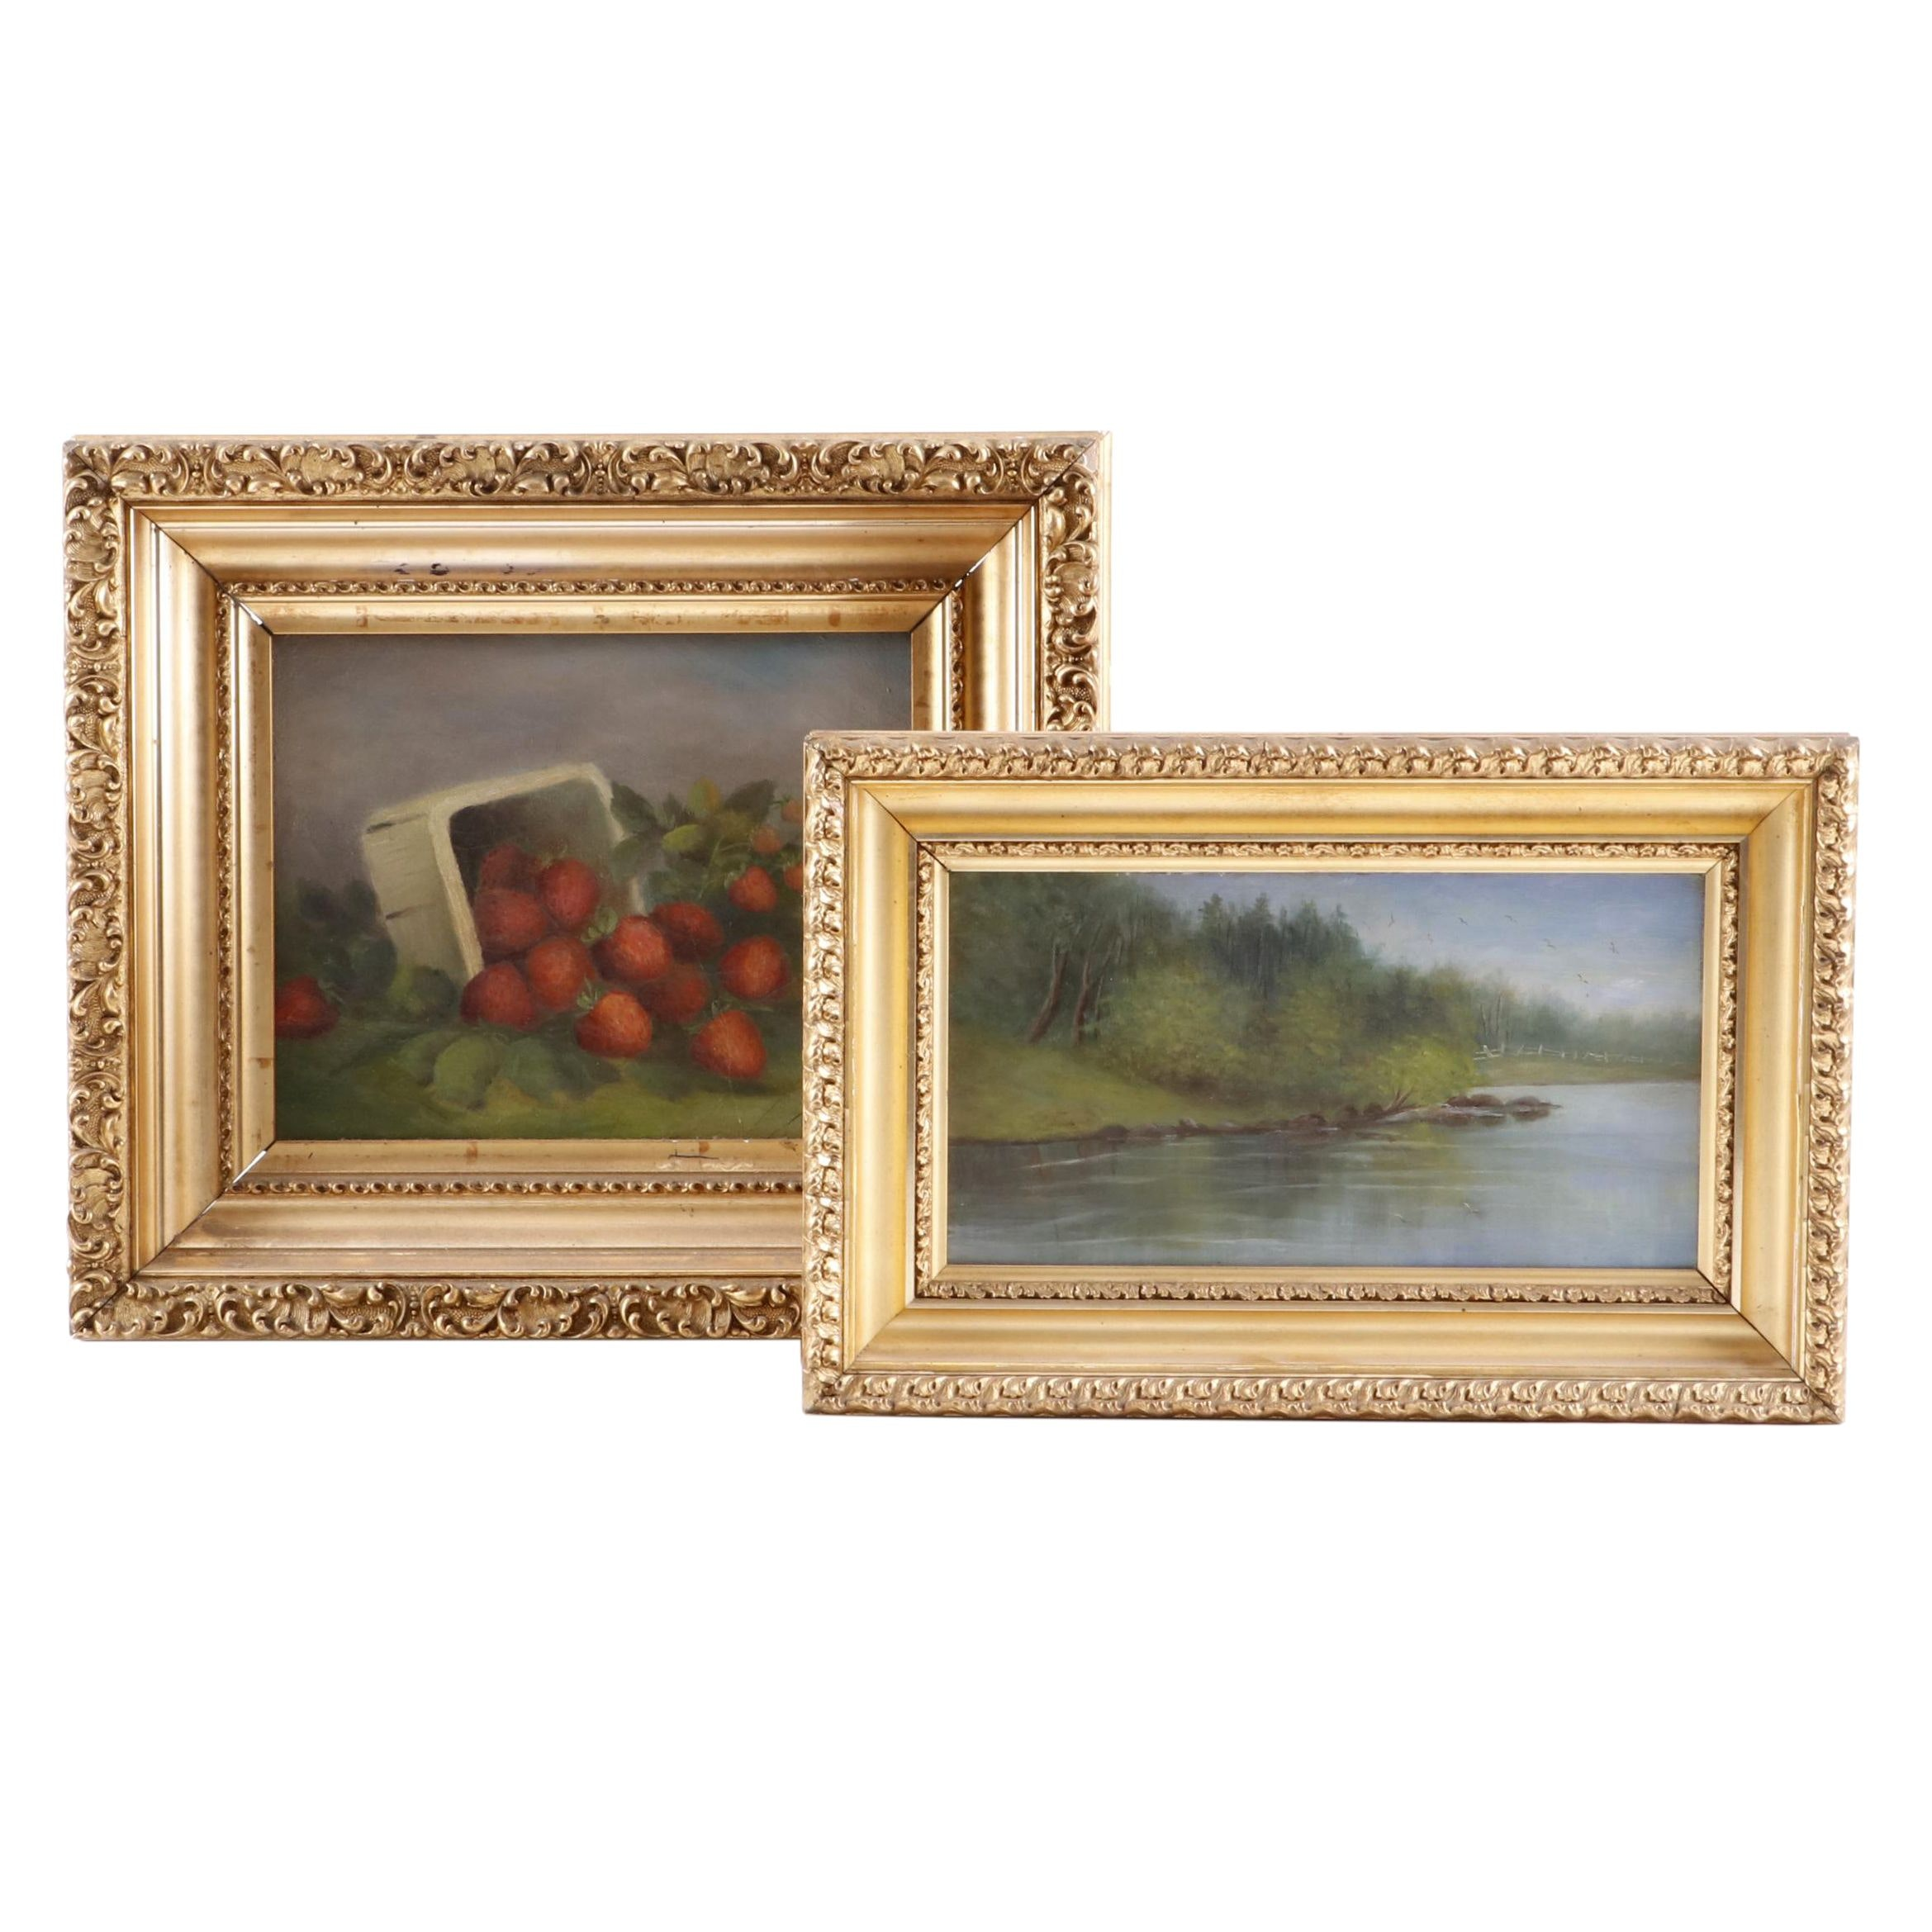 Still Life with Strawberries and River Landscape Oil Paintings